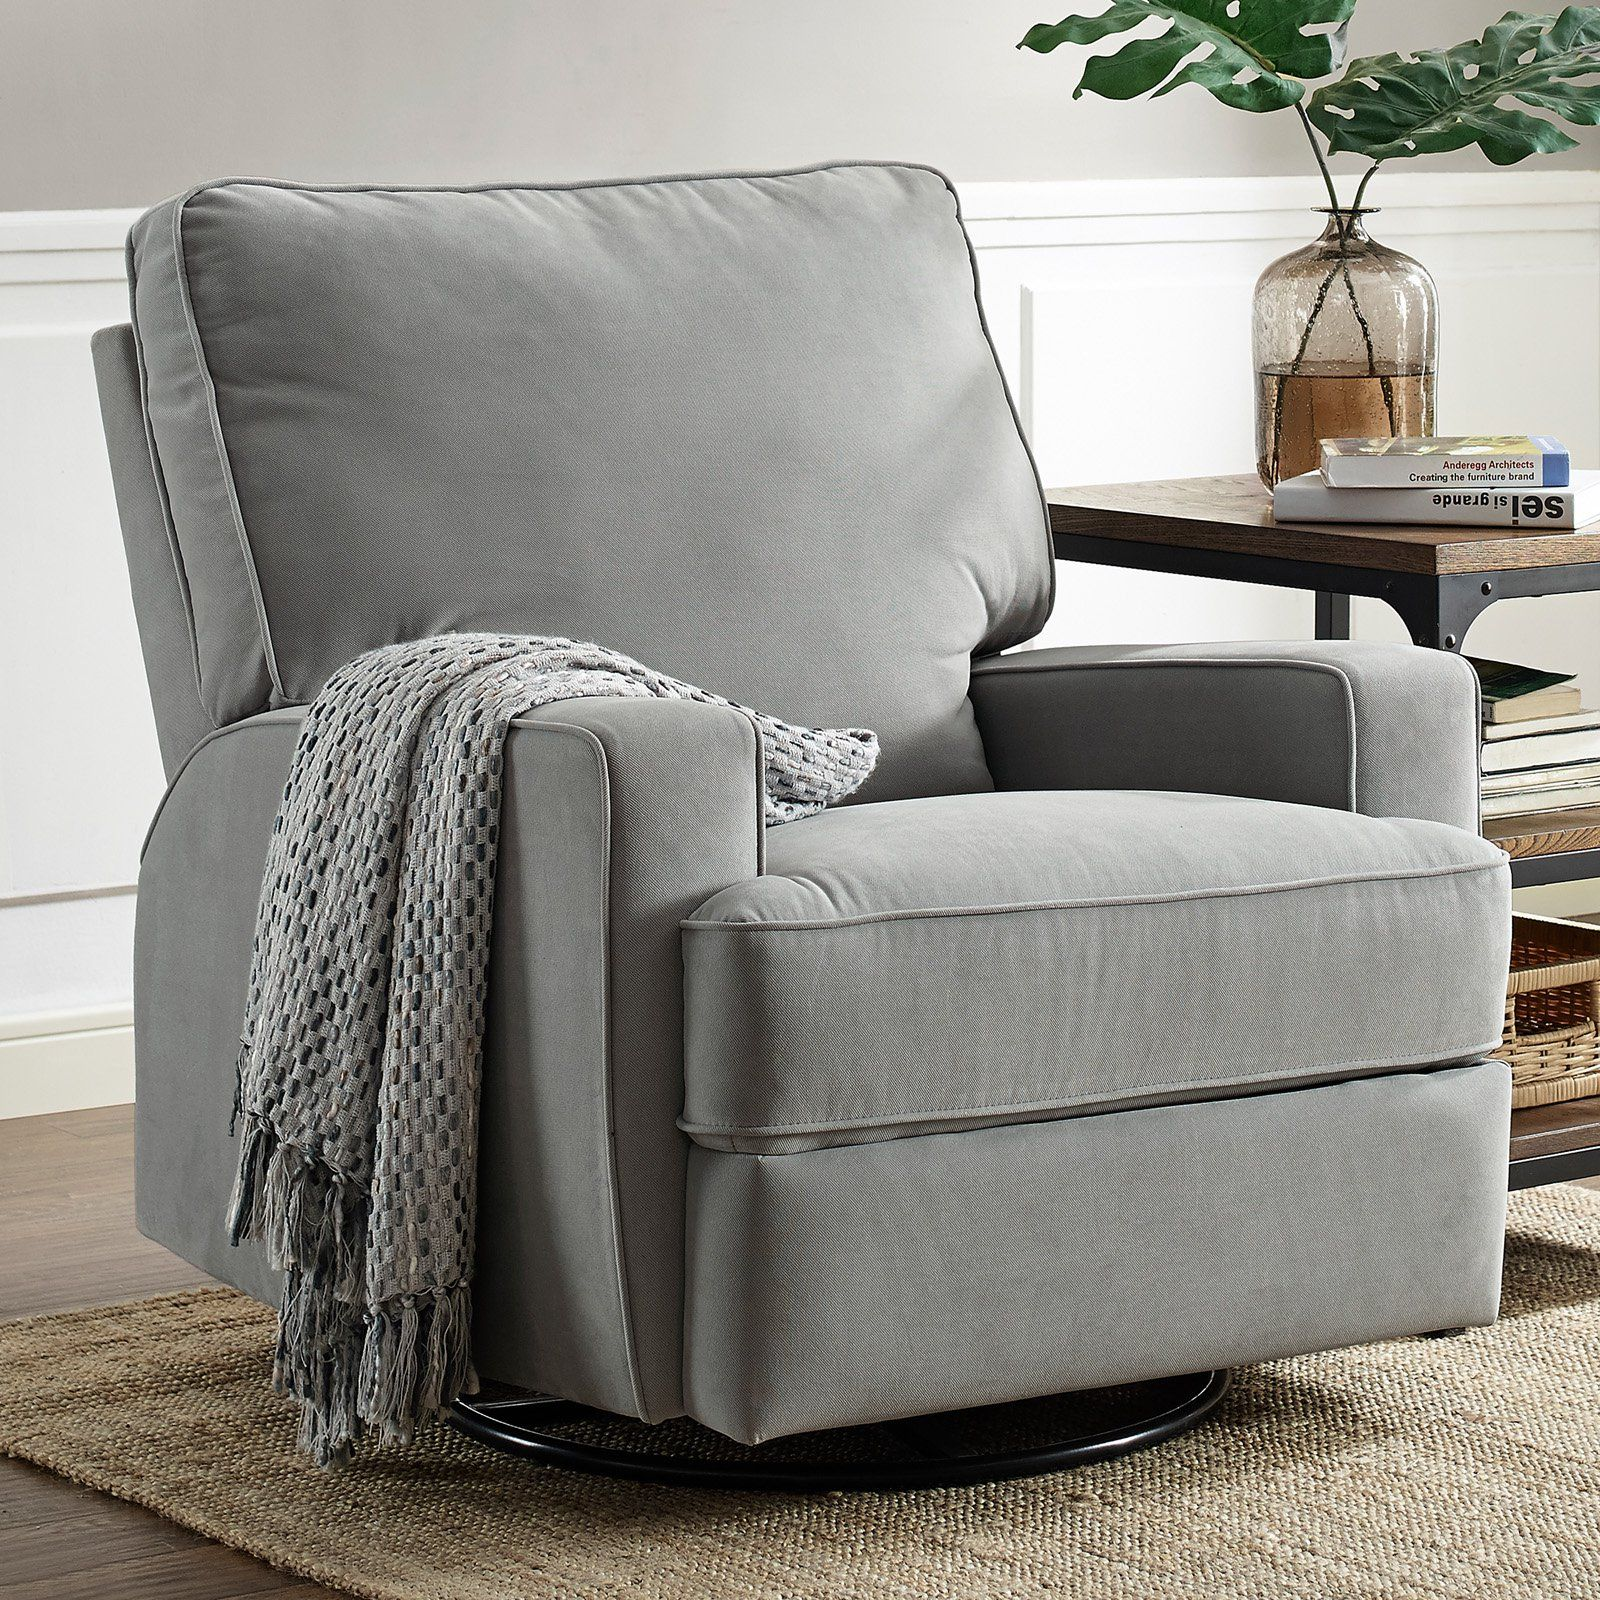 Baby Relax Rylan Swivel Gliding Recliner   from hayneedle.com. In ...